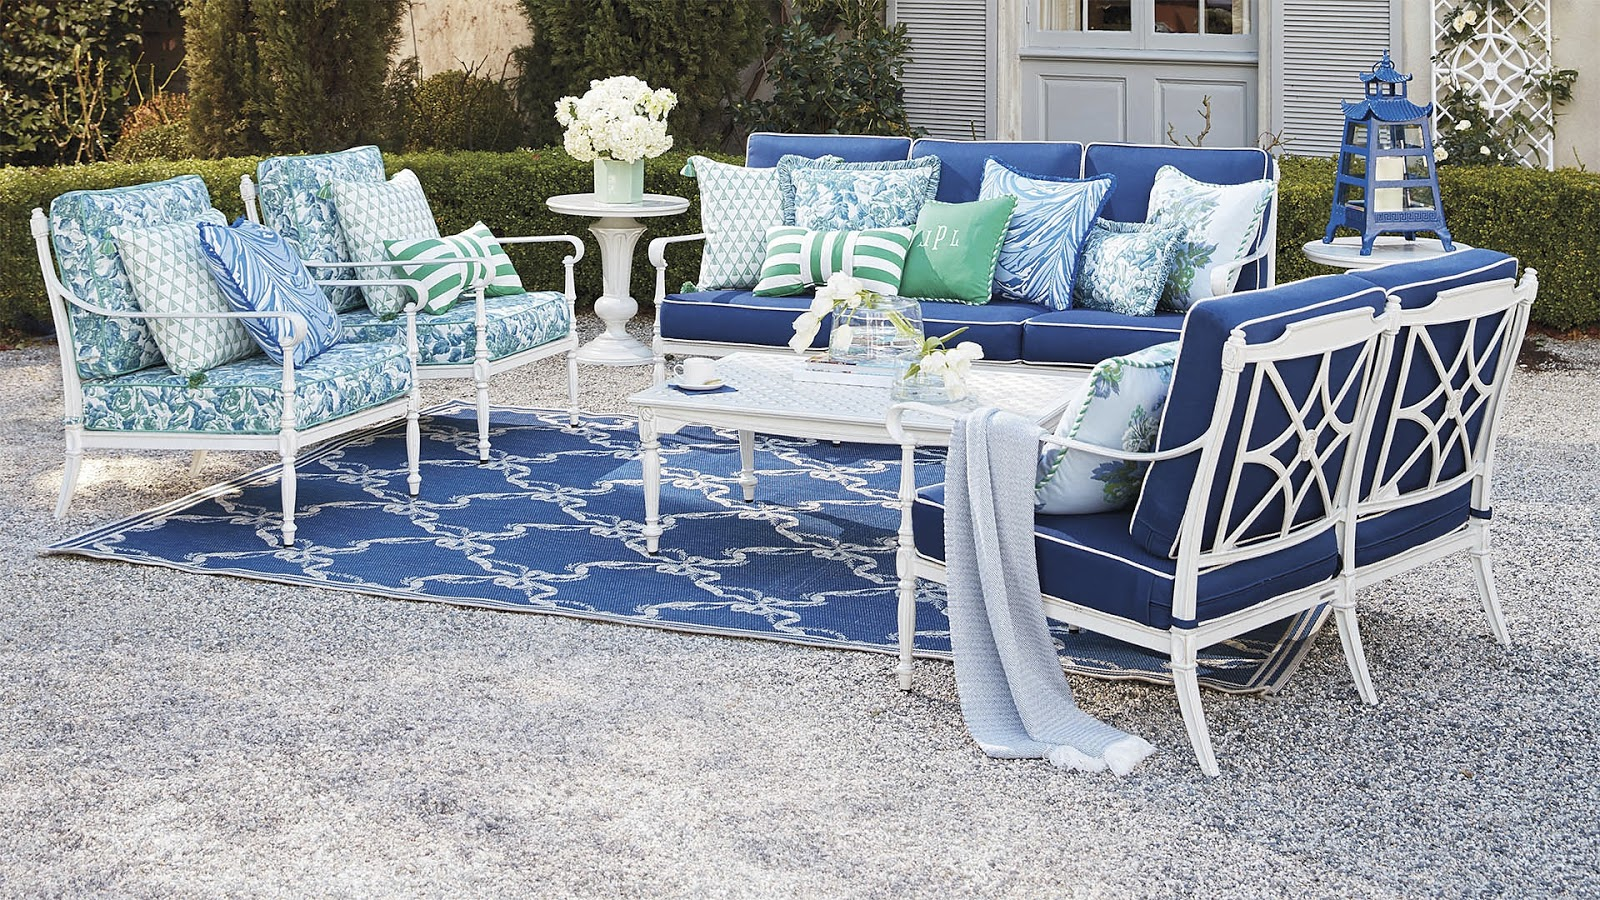 Carelton Varney for Frontgate + Giveaway! - The Glam Pad